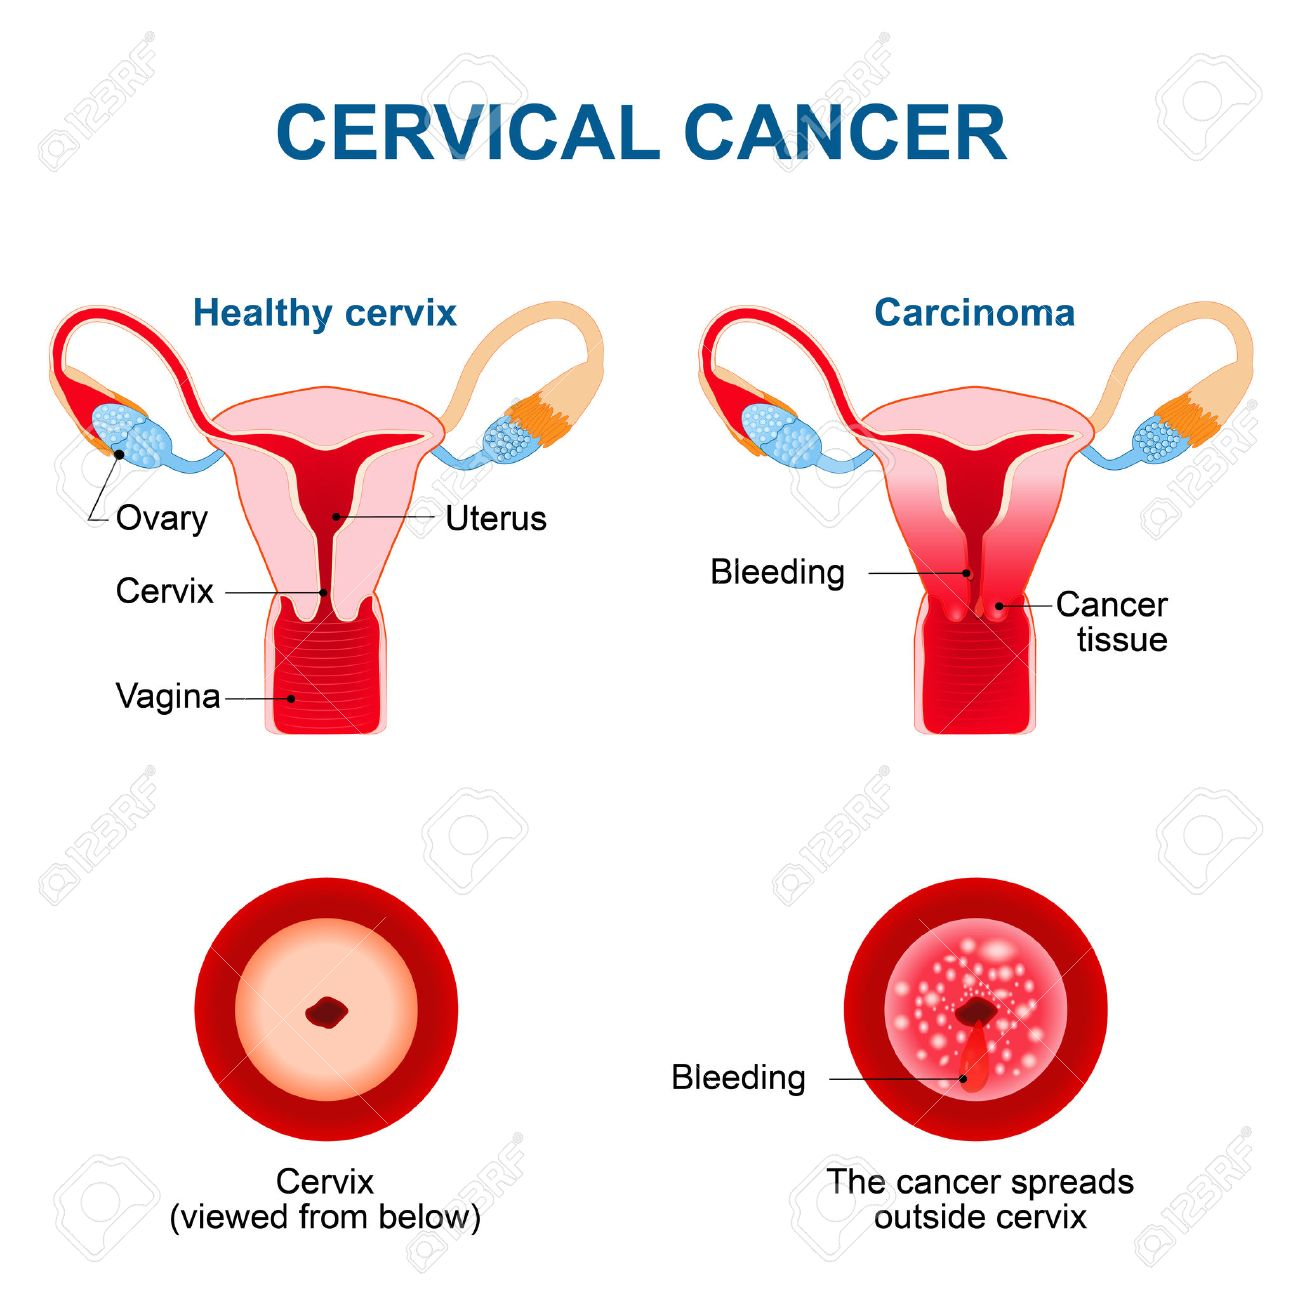 hight resolution of cervical cancer carcinoma of cervix malignant neoplasm arising from cells in the cervix uteri